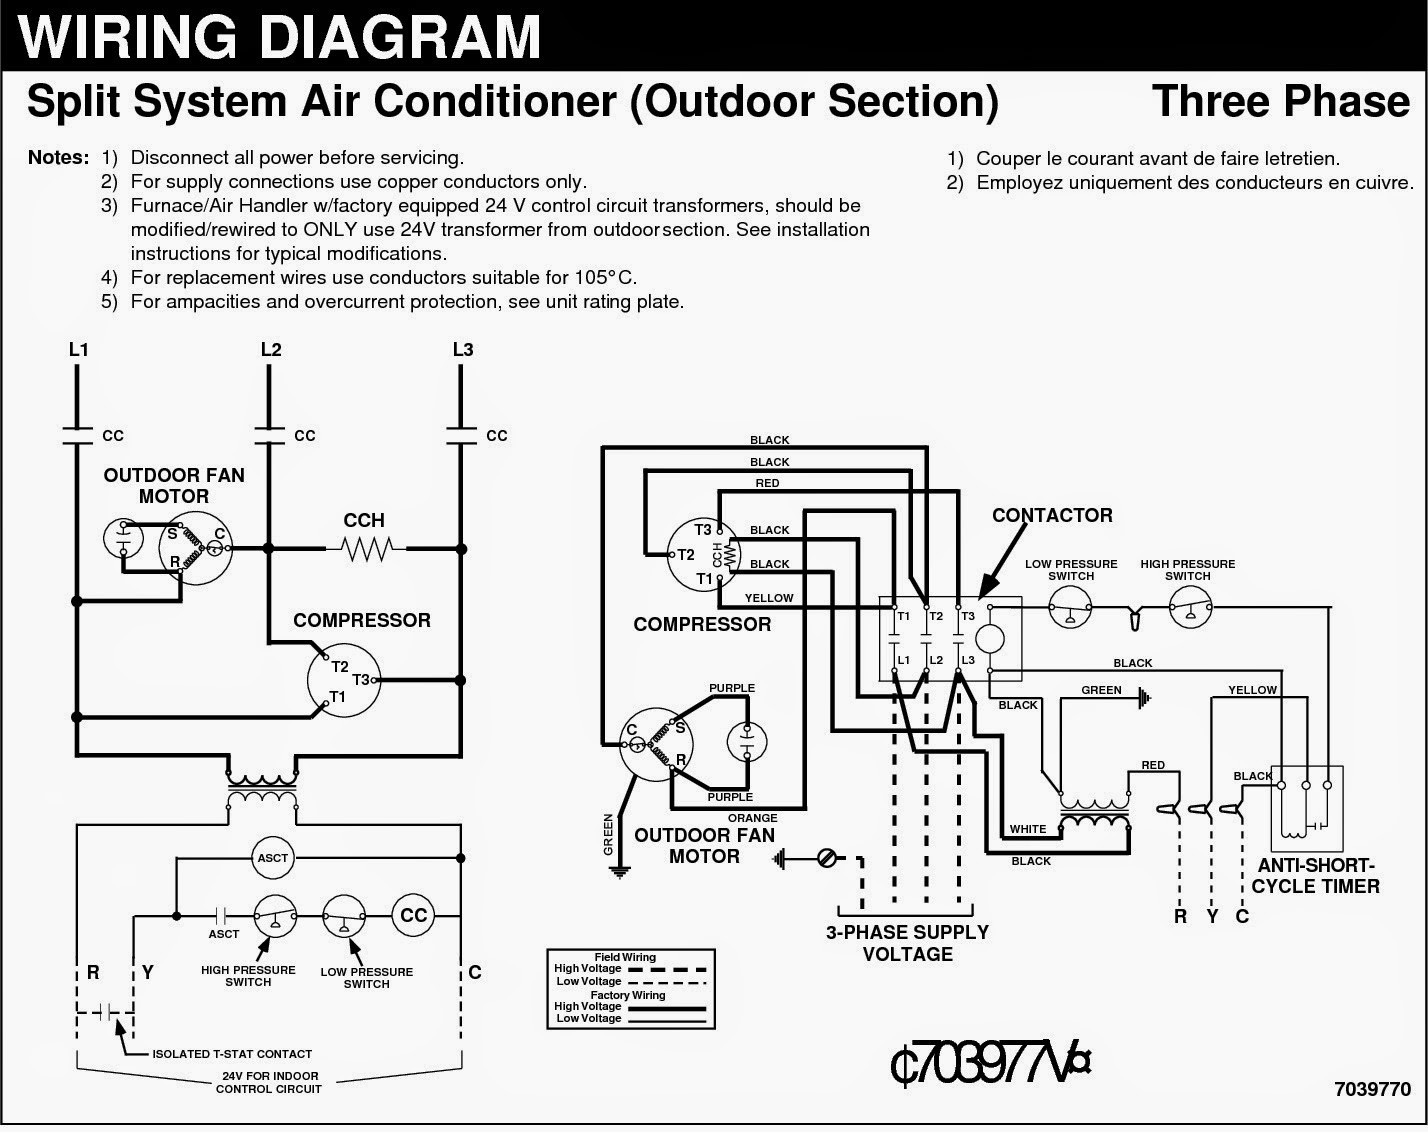 ac outdoor fan motor wiring